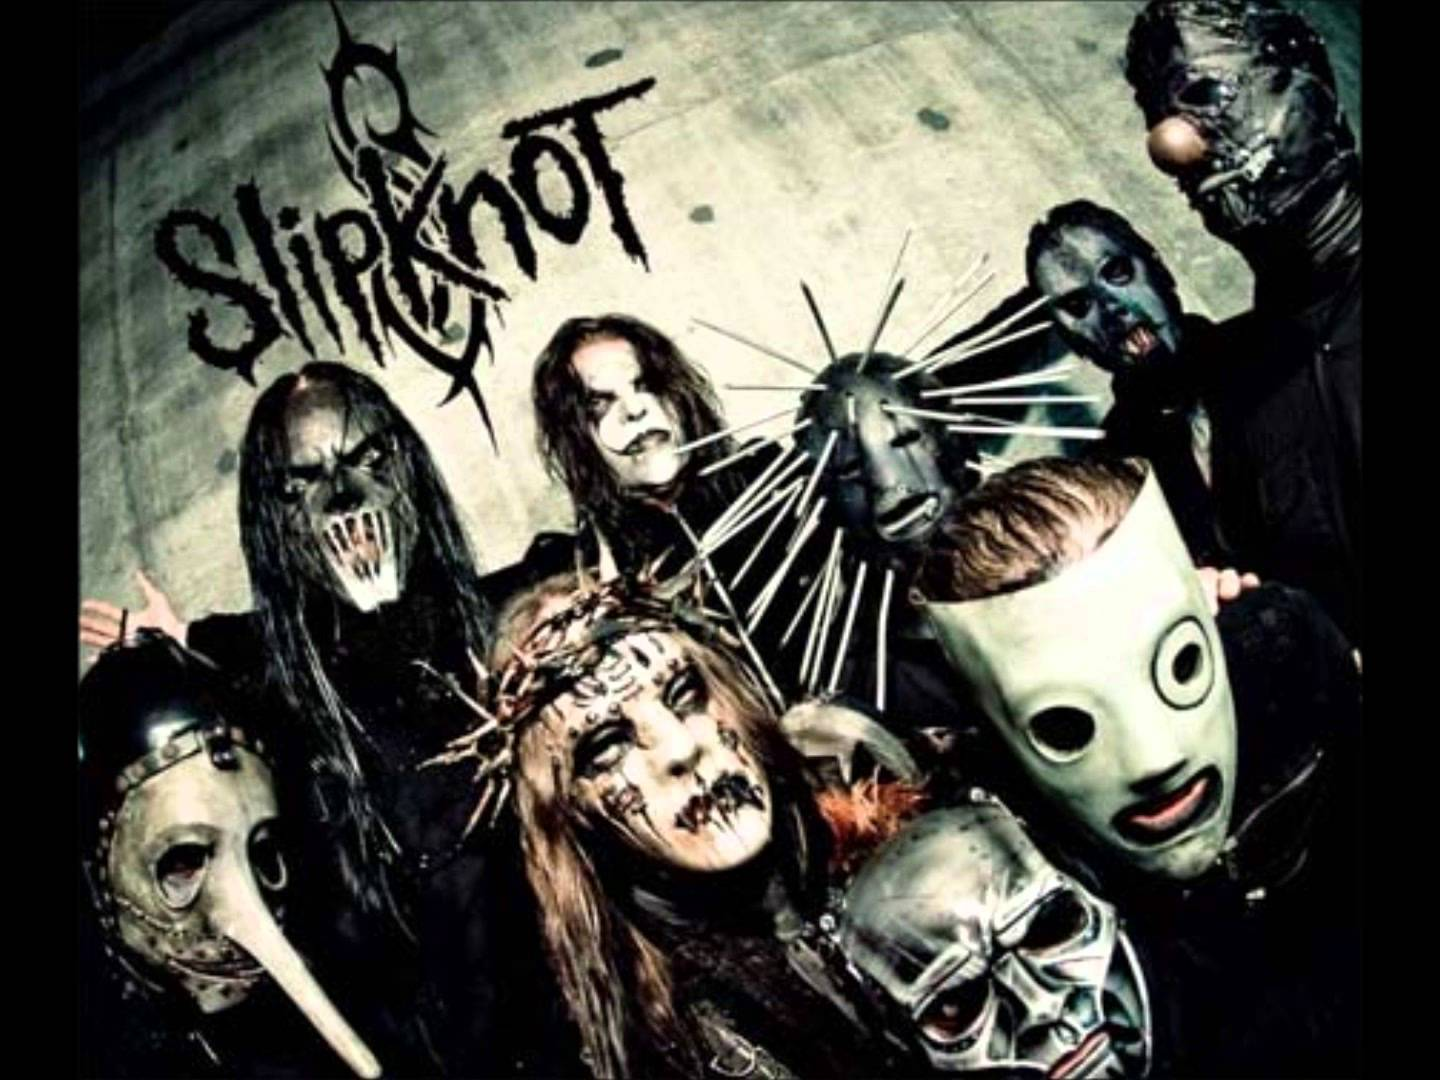 Download Lagu Full Album Mp3 Slipknot | My Arcop